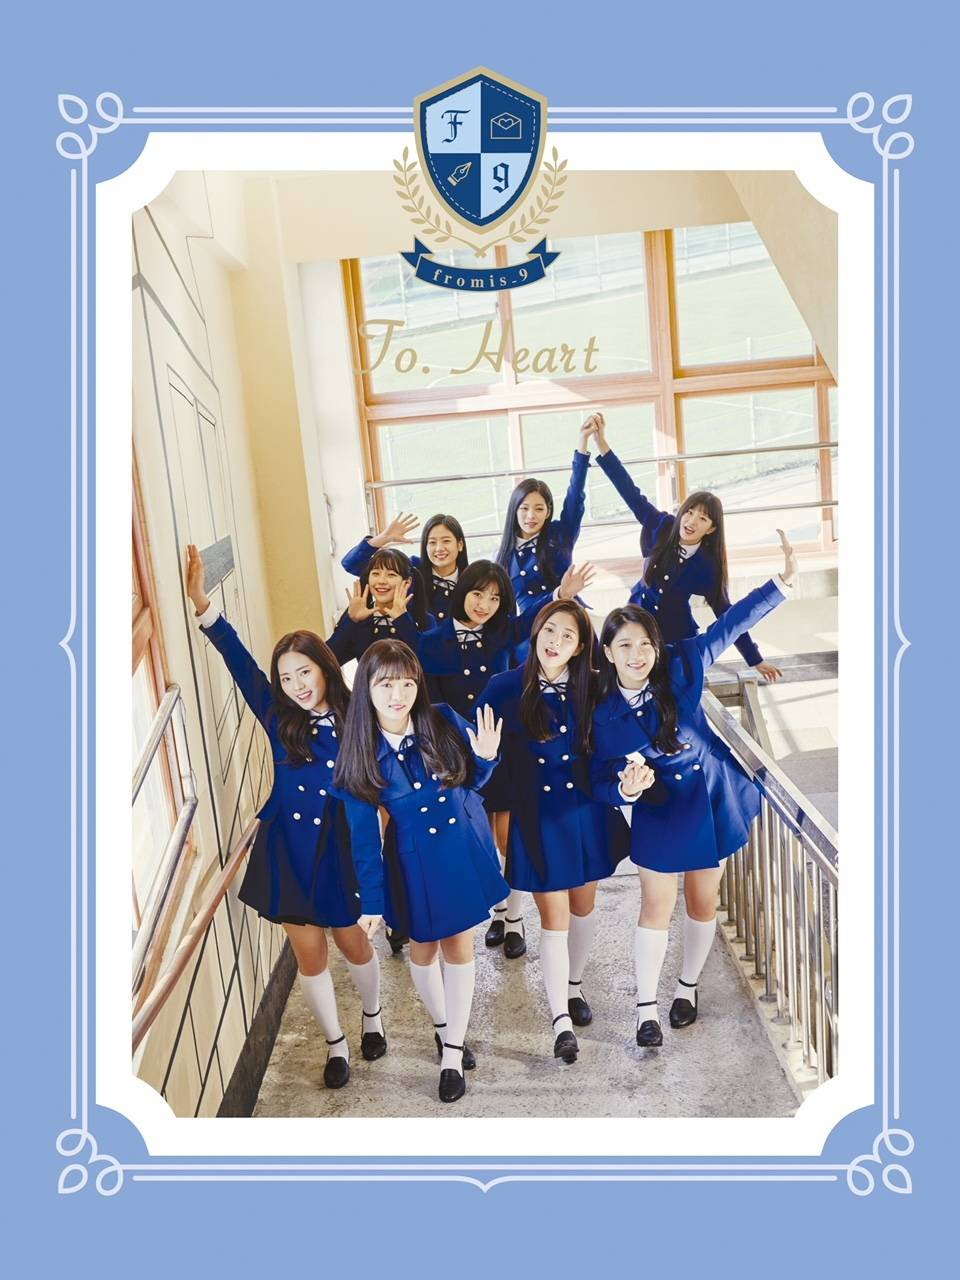 Fromis_9 - Debut Album: To. Heart CD (Blue Version)